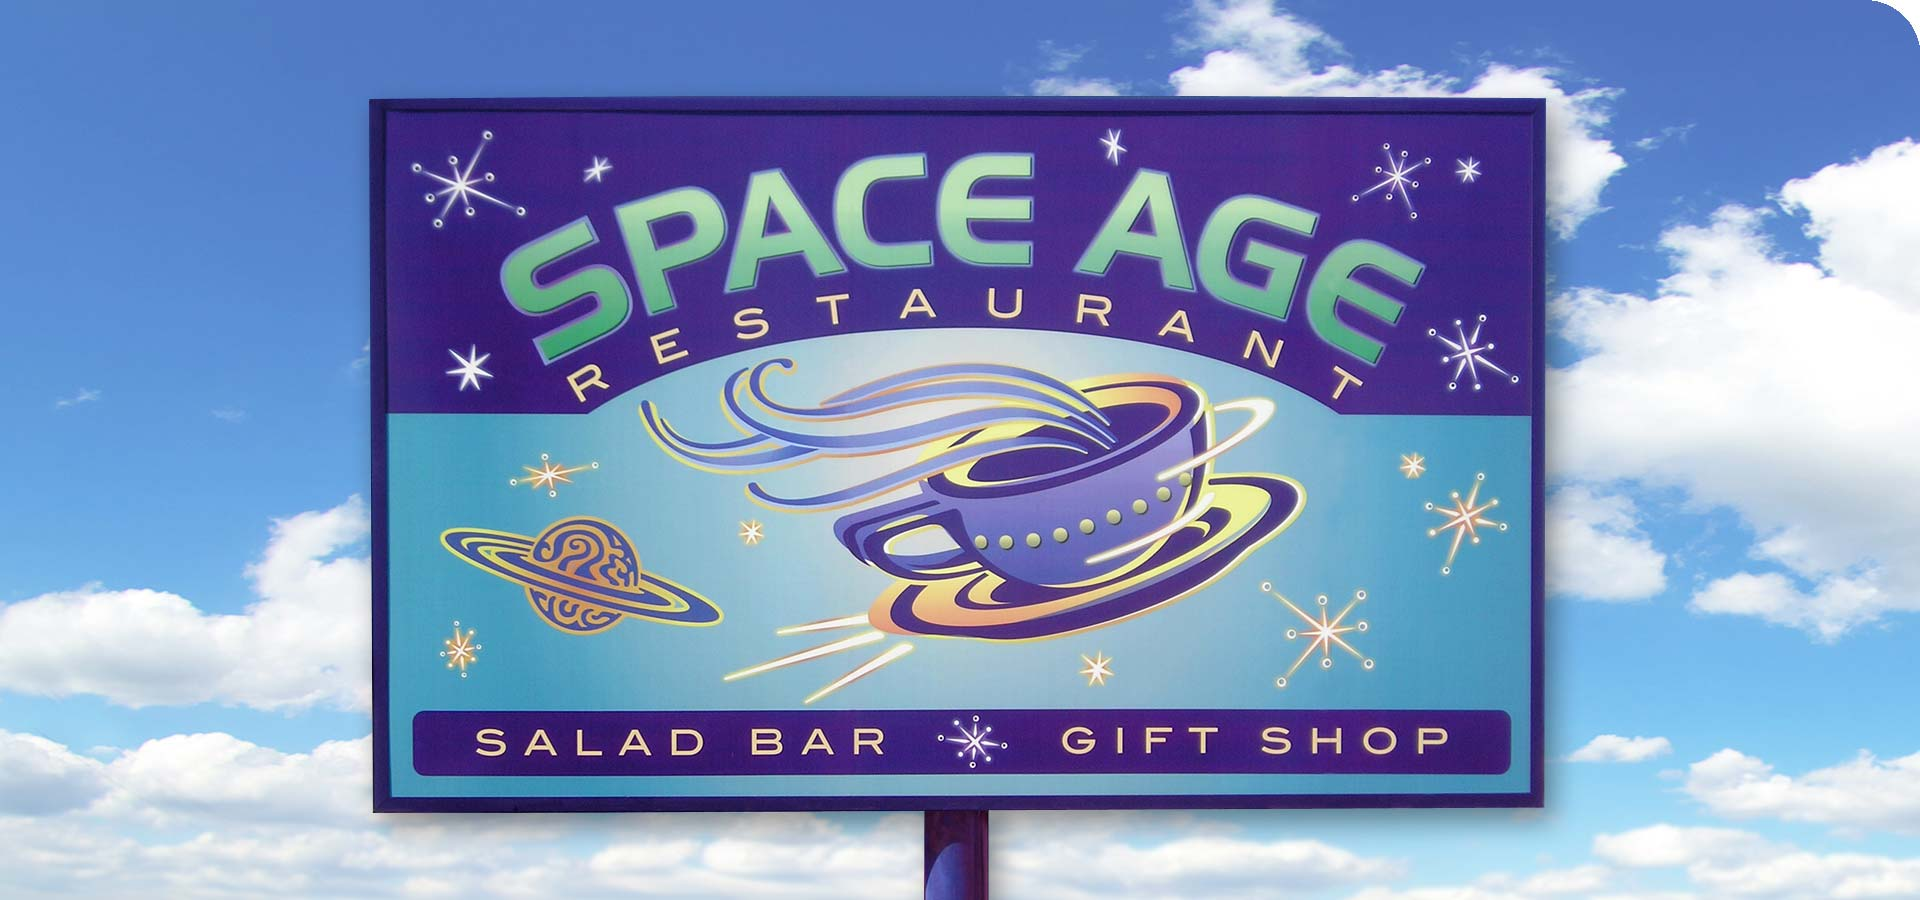 Space Age Lodge Signage Design